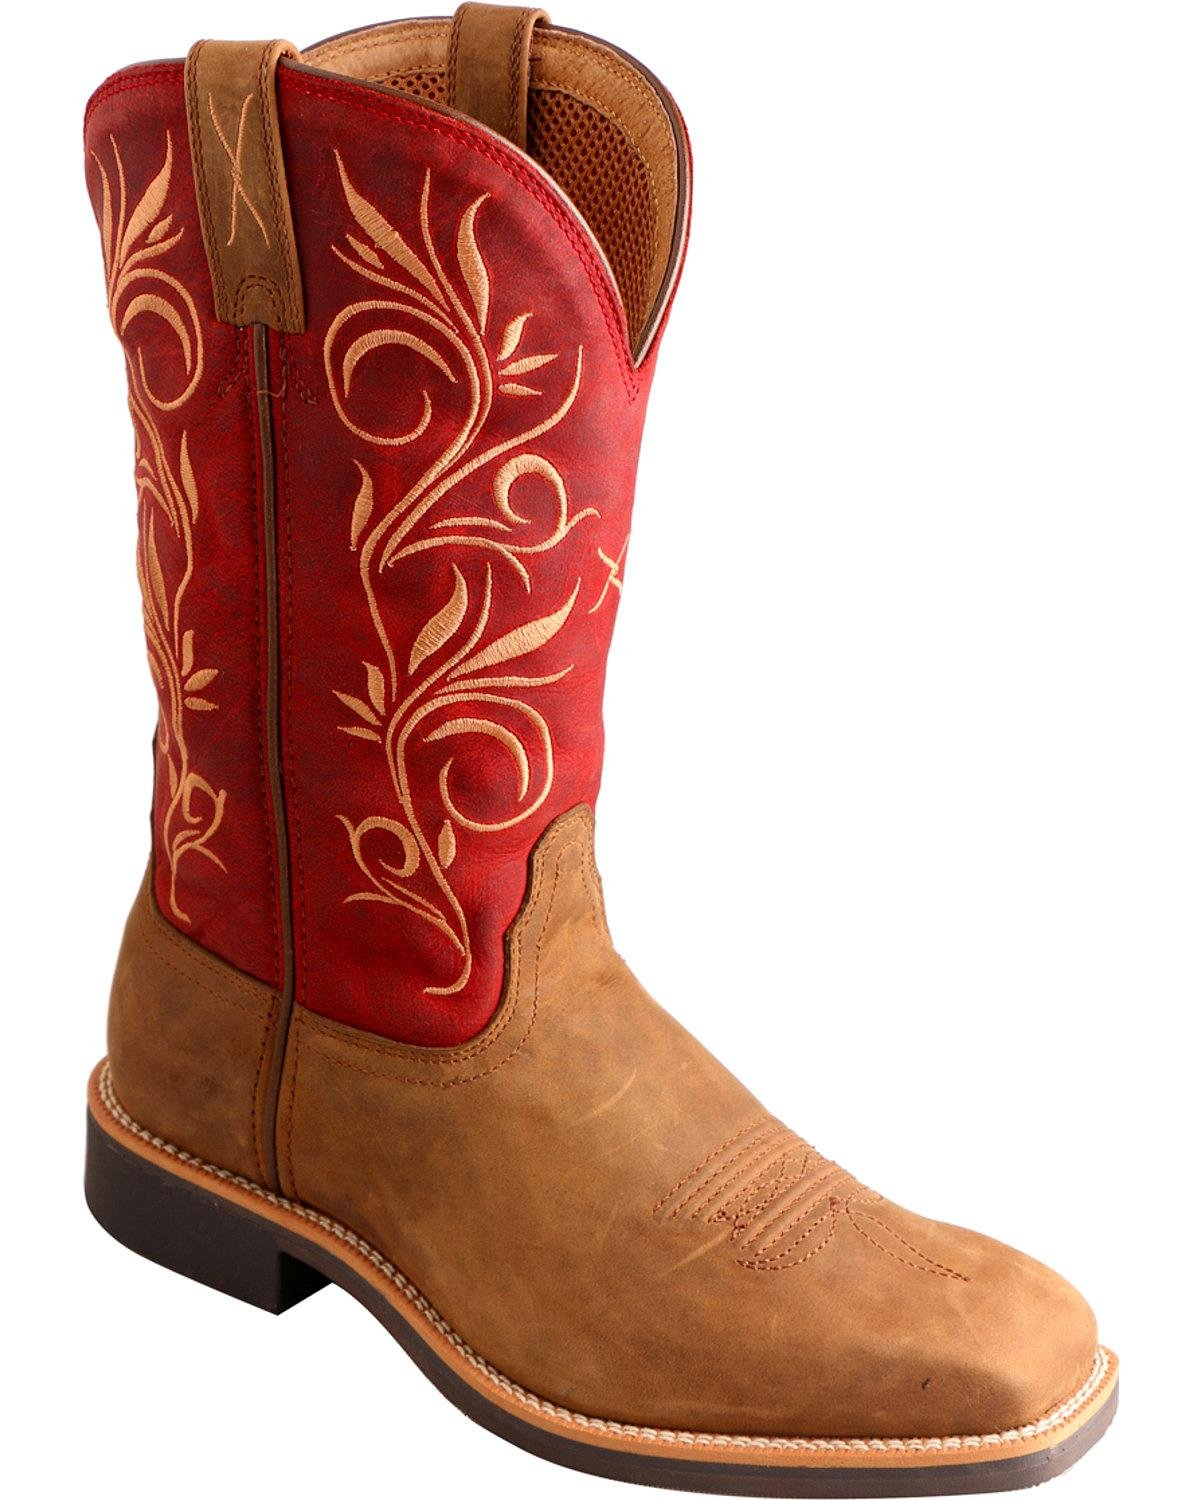 Twisted X Womens Red Leather 11in Distressed Top Hand Cowboy Boots 6.5B